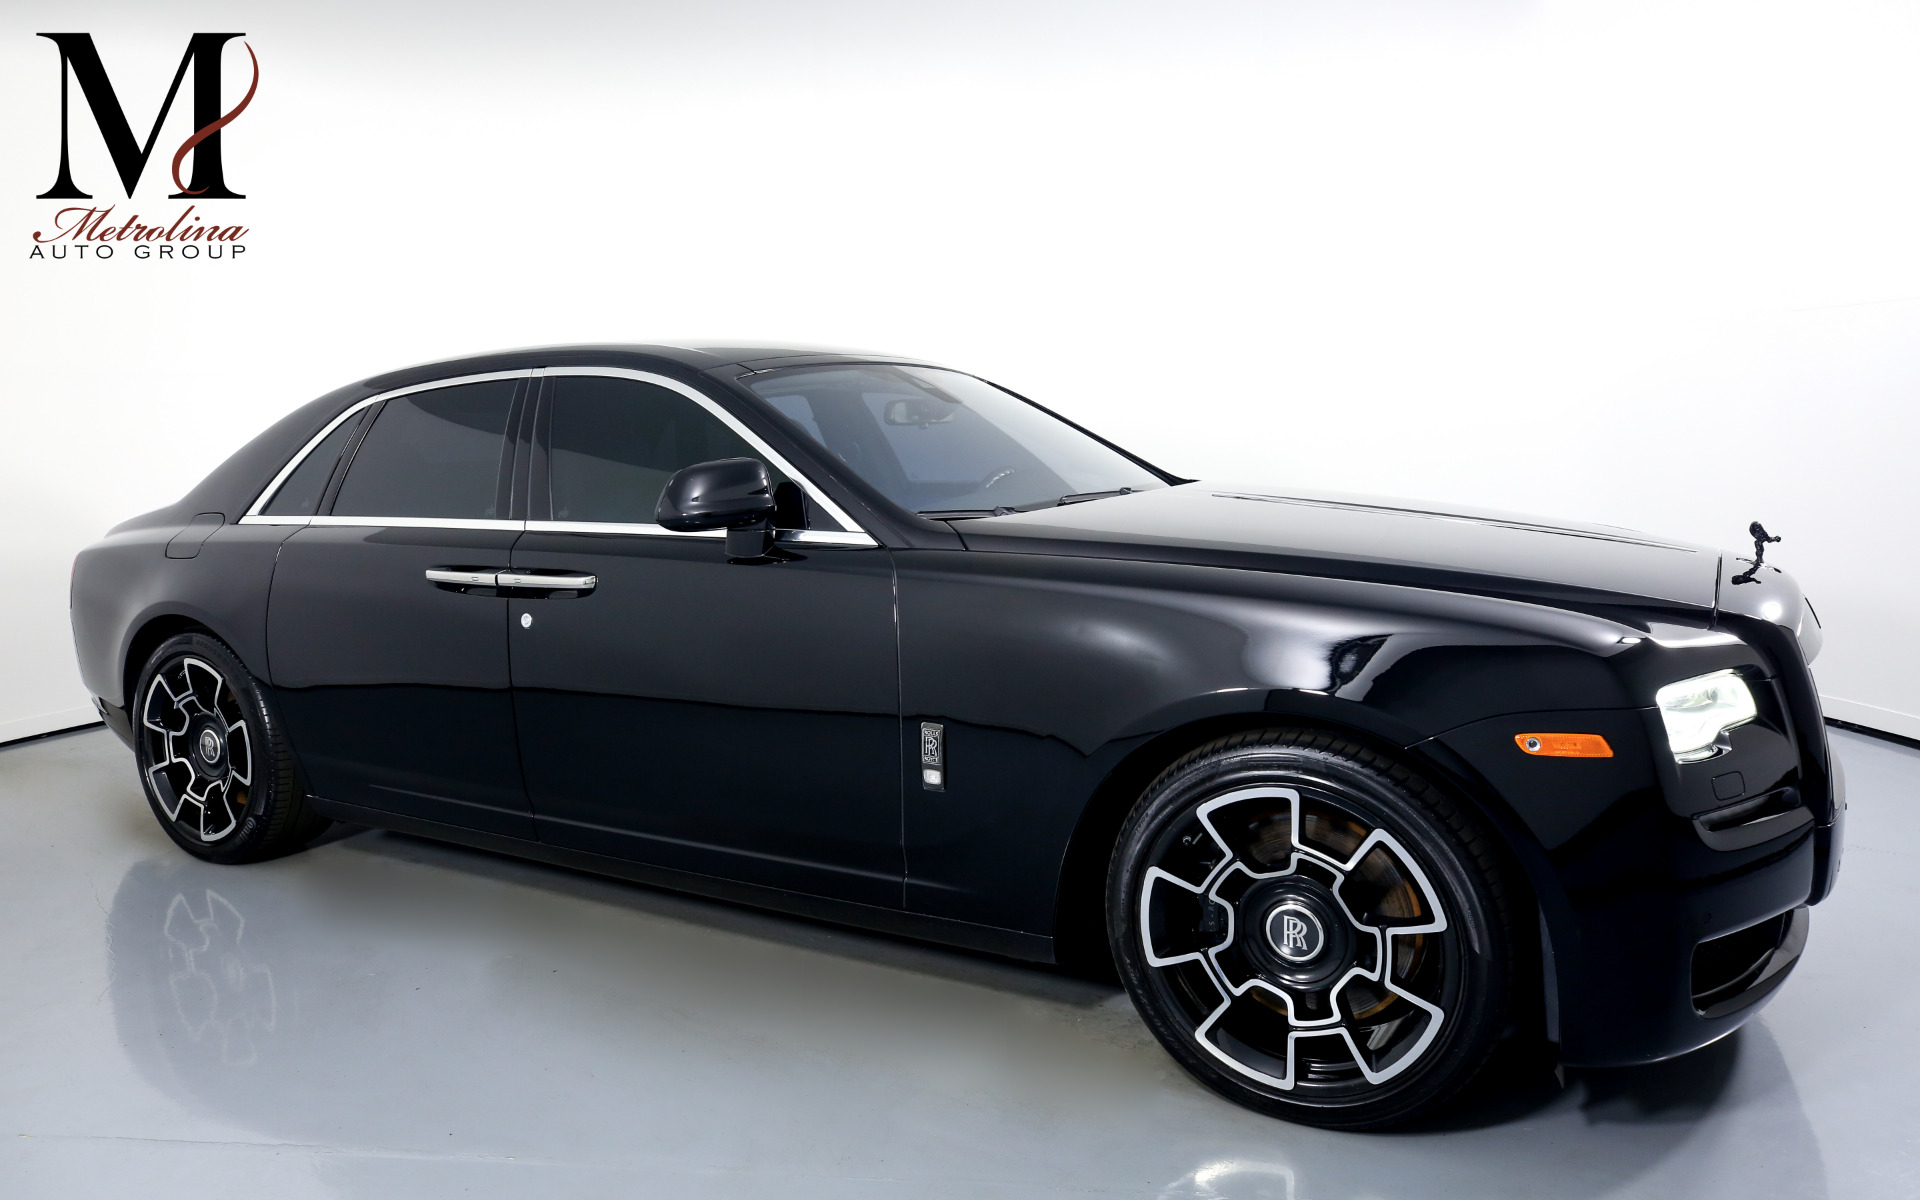 Used 2017 Rolls-Royce Ghost for sale $214,996 at Metrolina Auto Group in Charlotte NC 28217 - 1